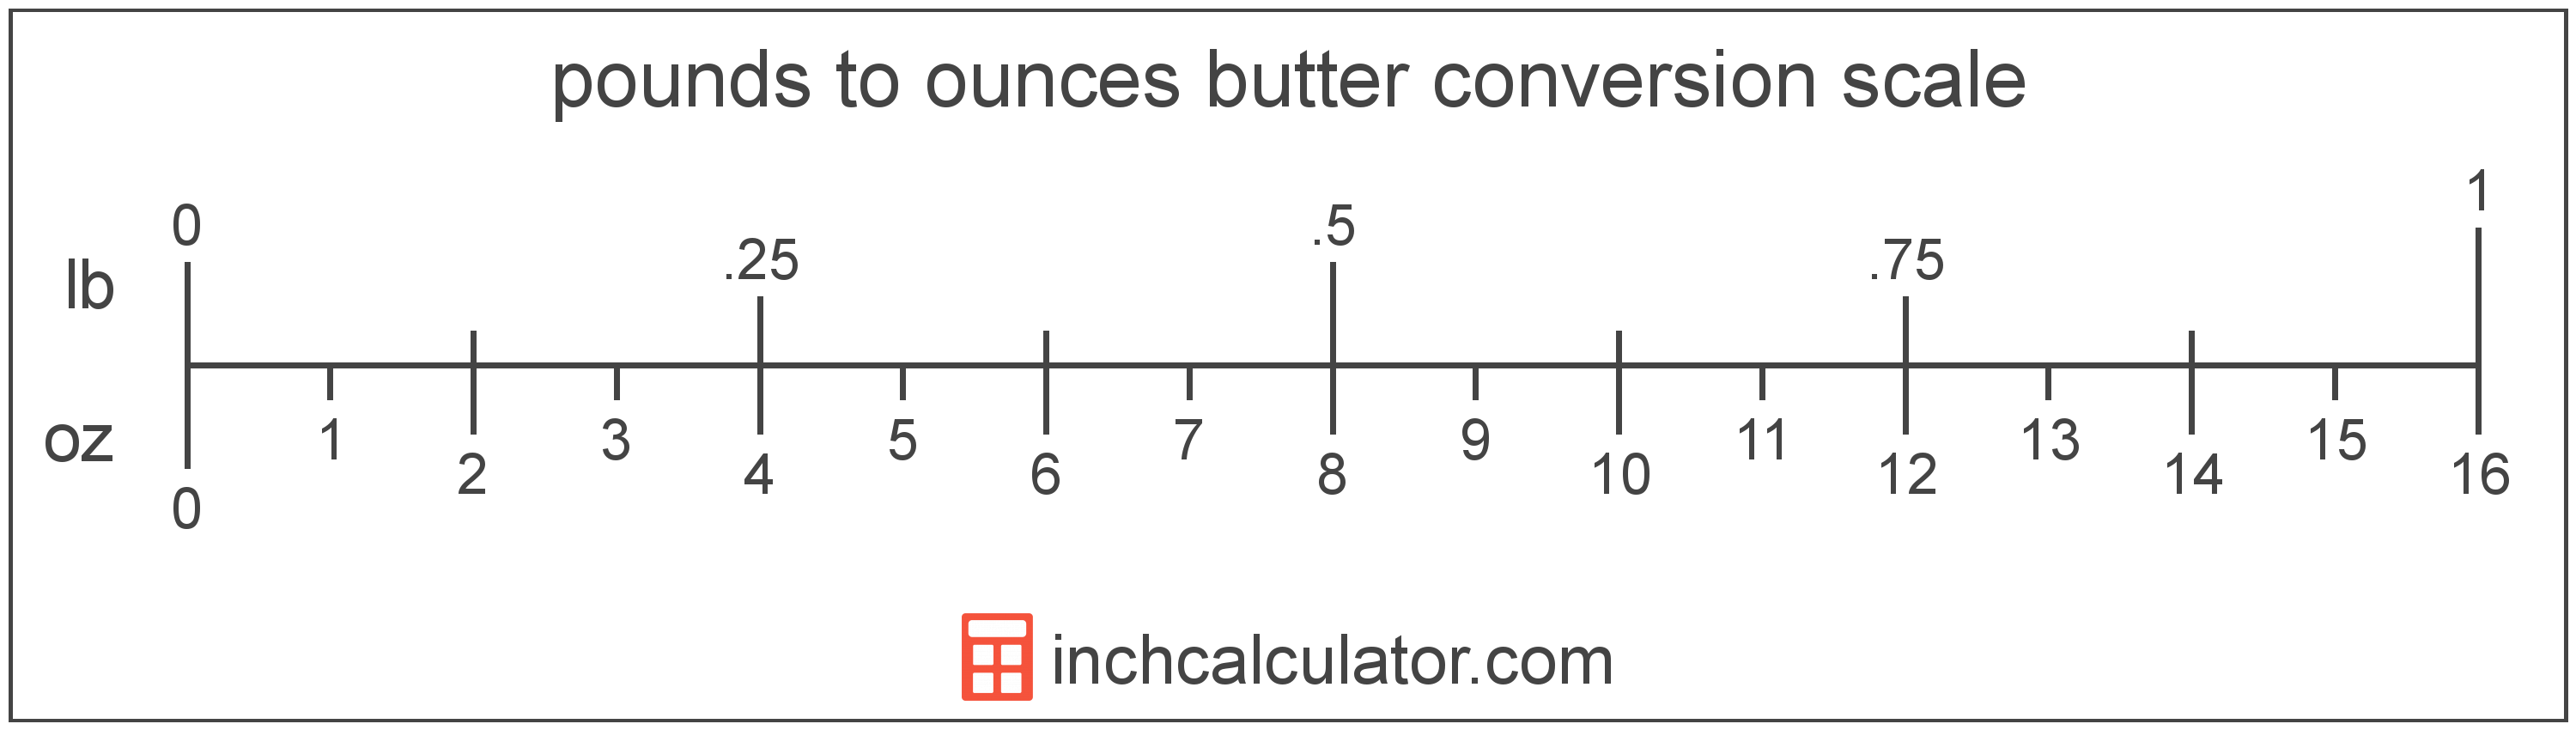 conversion scale showing ounces and equivalent pounds butter values